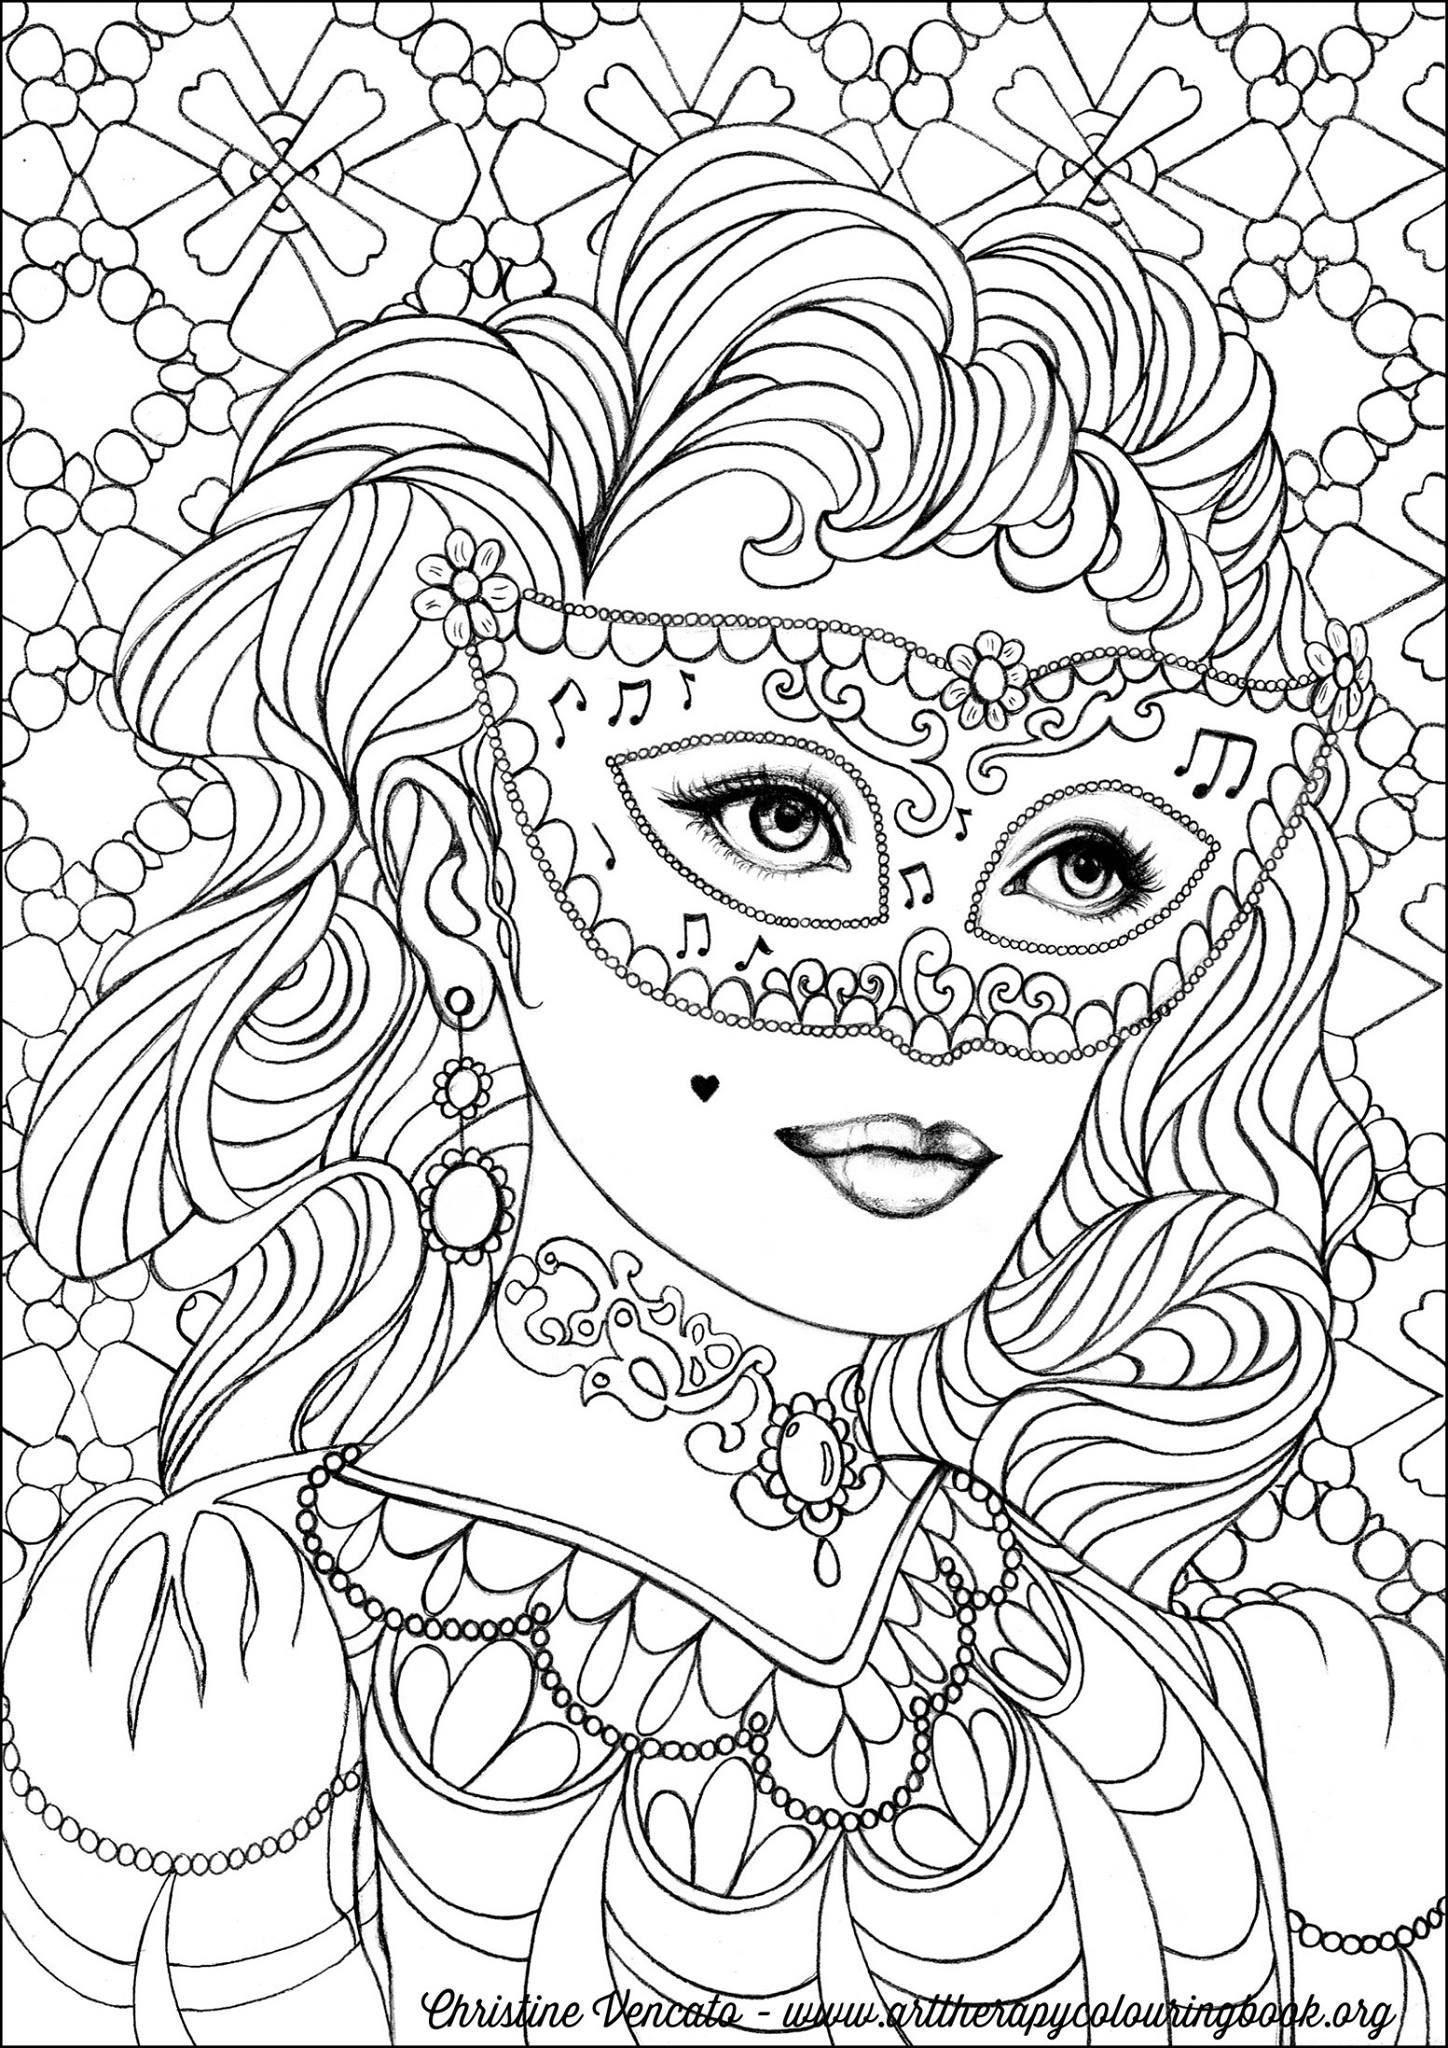 free coloring page from adult coloring worldwide art by christine